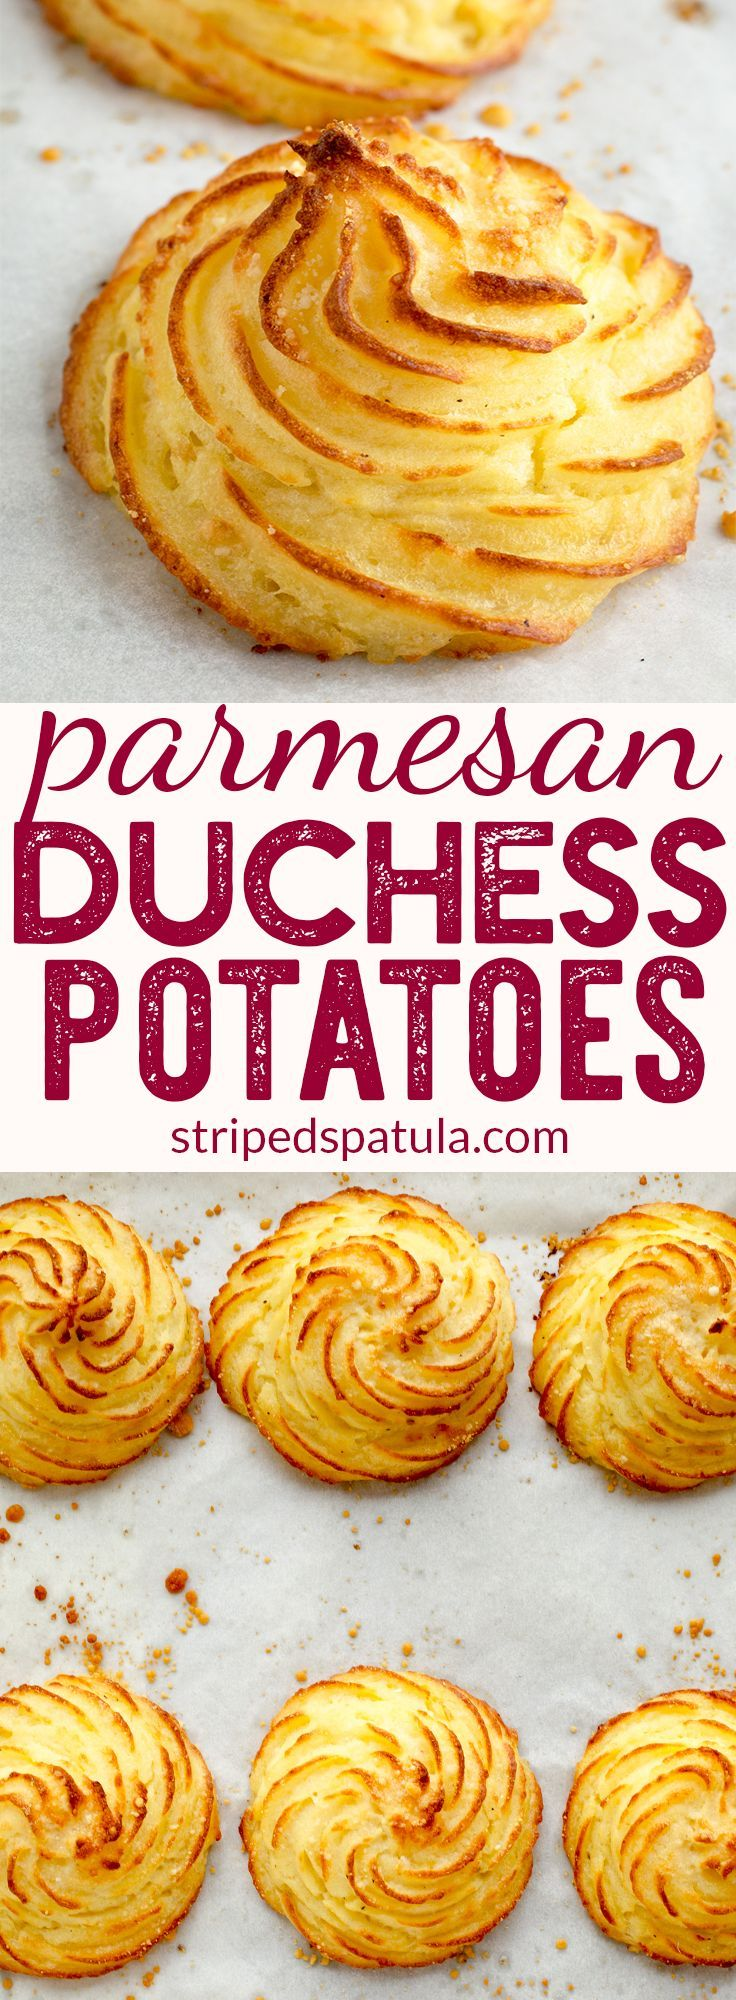 Parmesan Duchess Potatoes Recipe | Potato Side Dishes | Holiday Dinner Recipes | #potato #parmesan